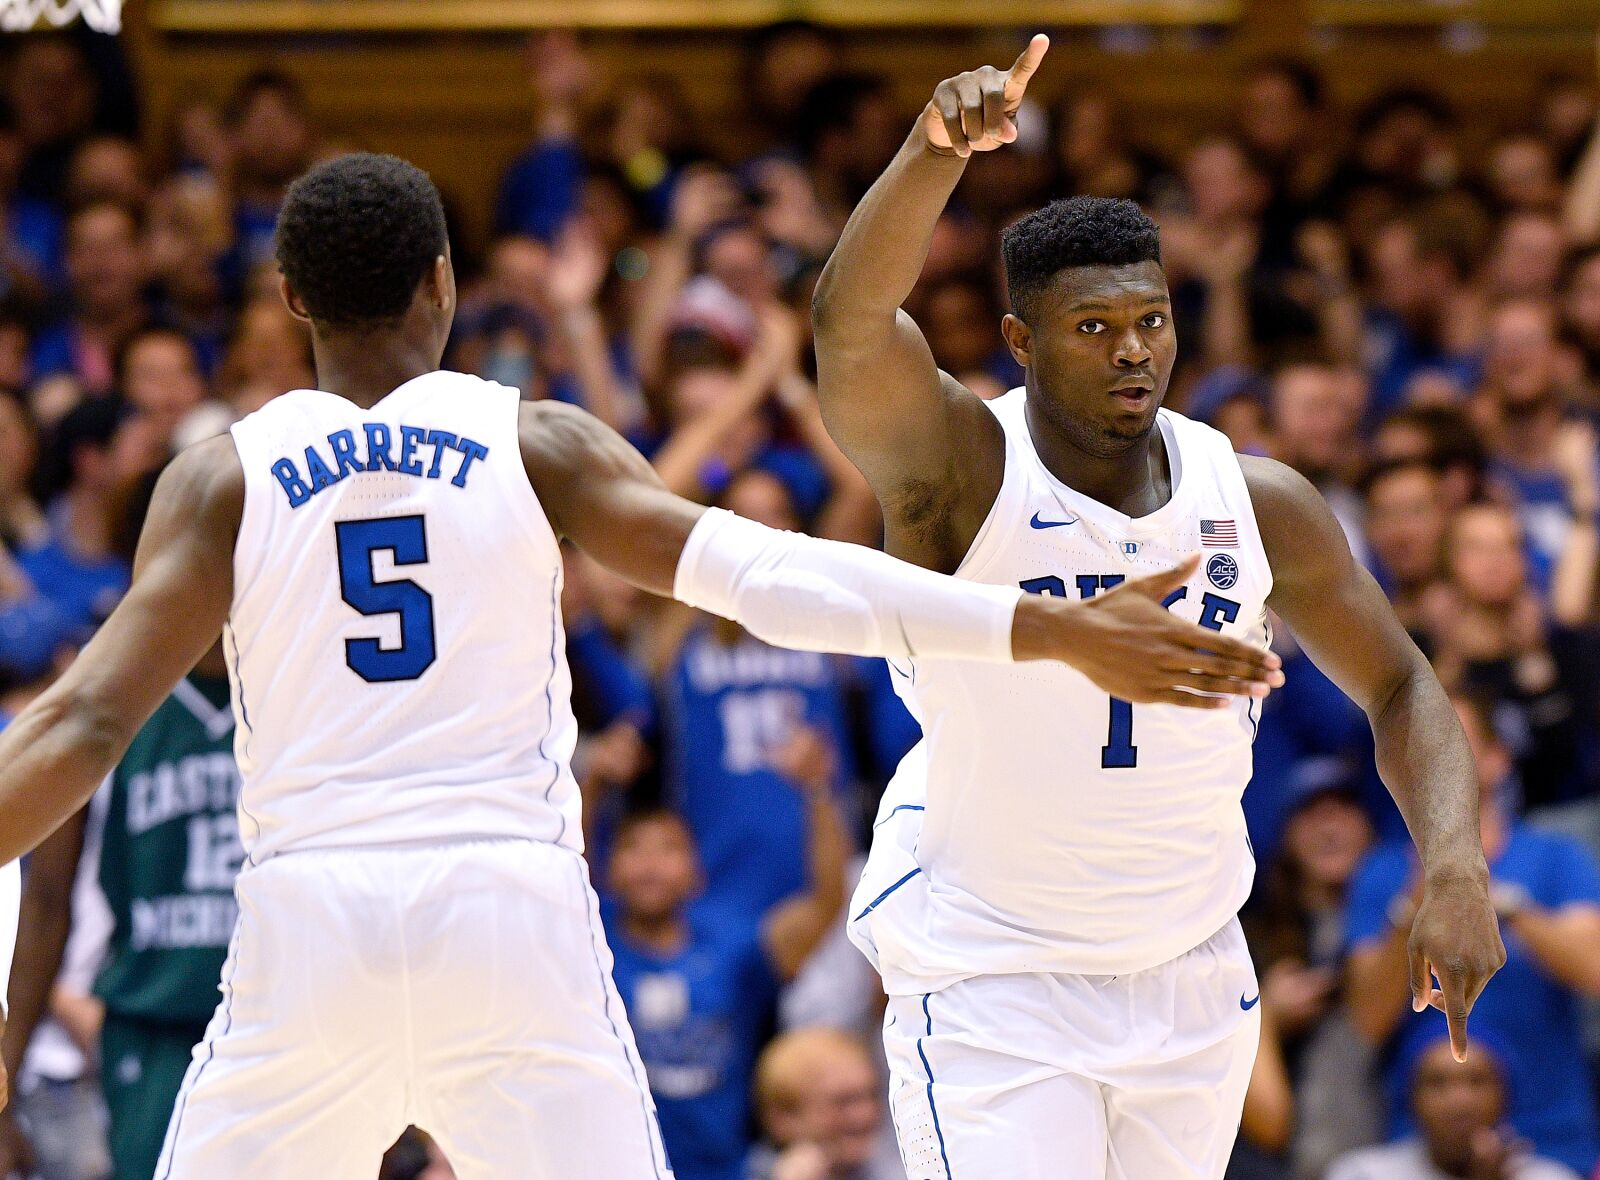 Duke Basketball: Blue Devils arrive in Maui with sights on sixth title